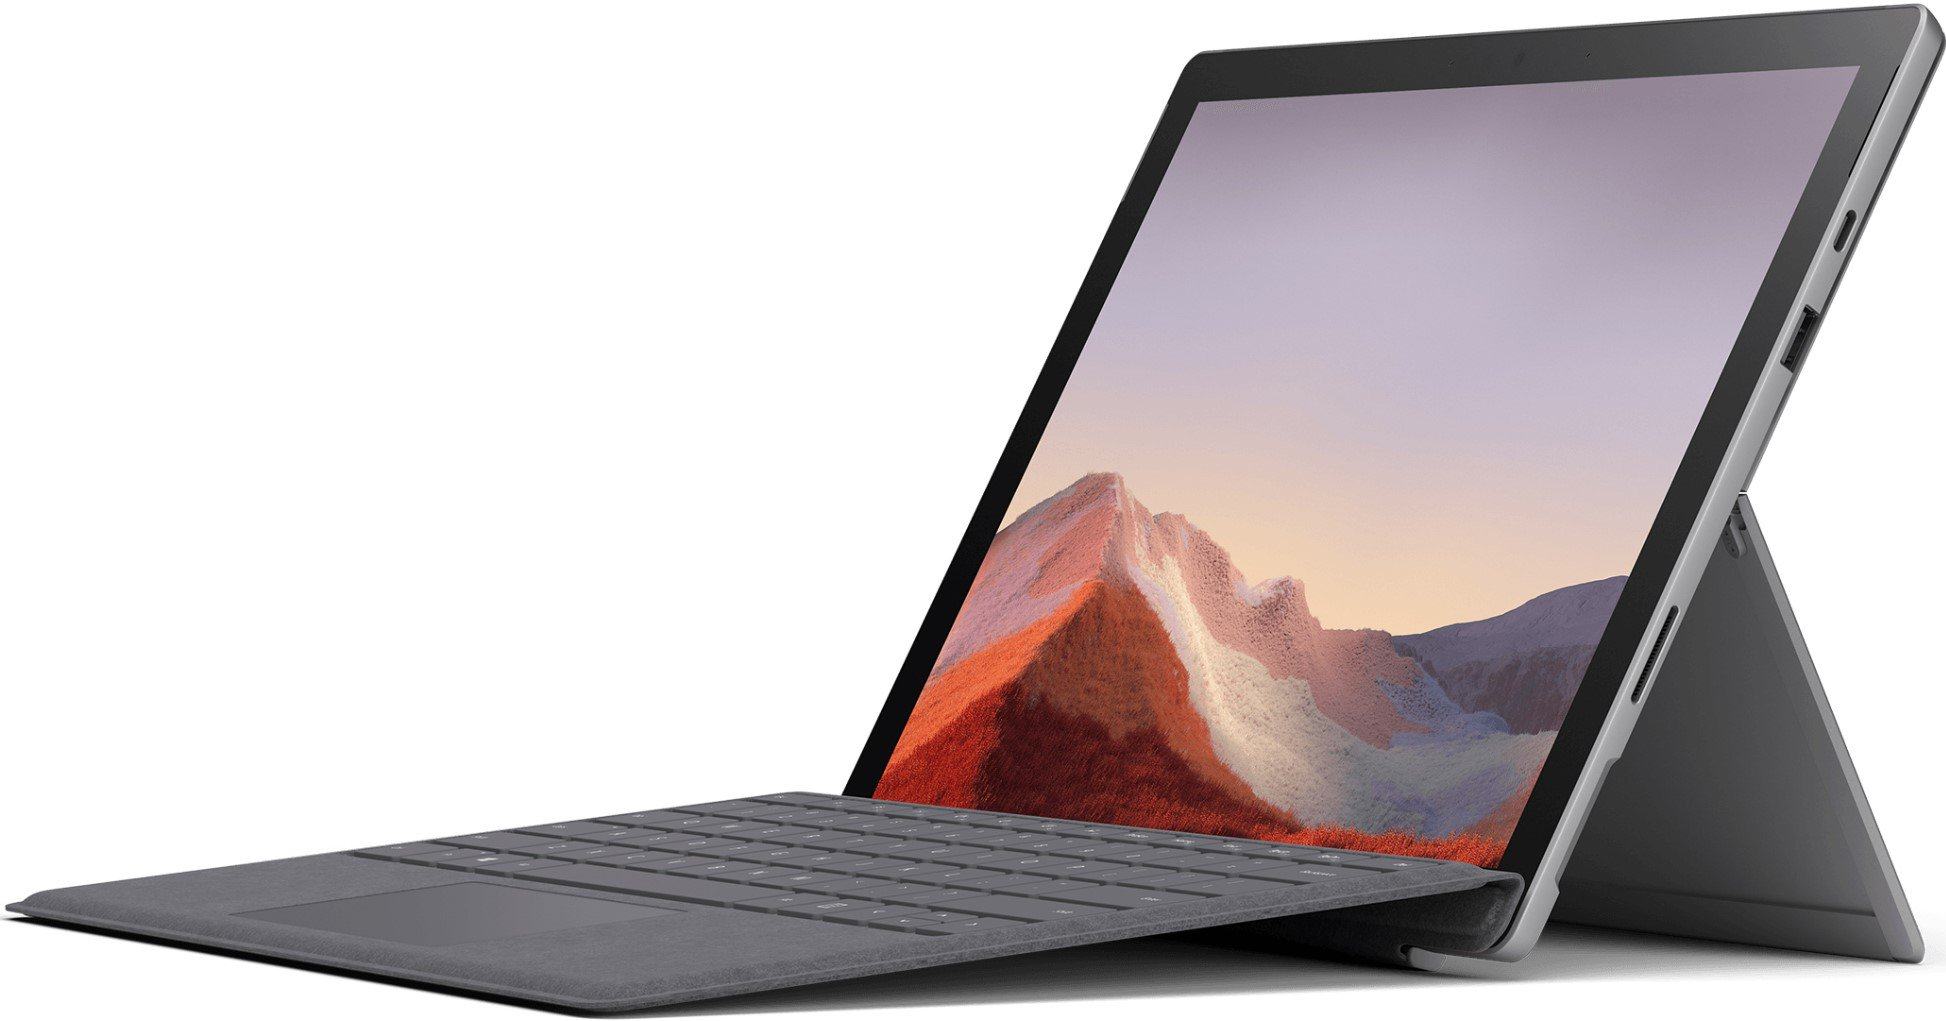 Can you get LTE connectivity with the Surface Pro 7?